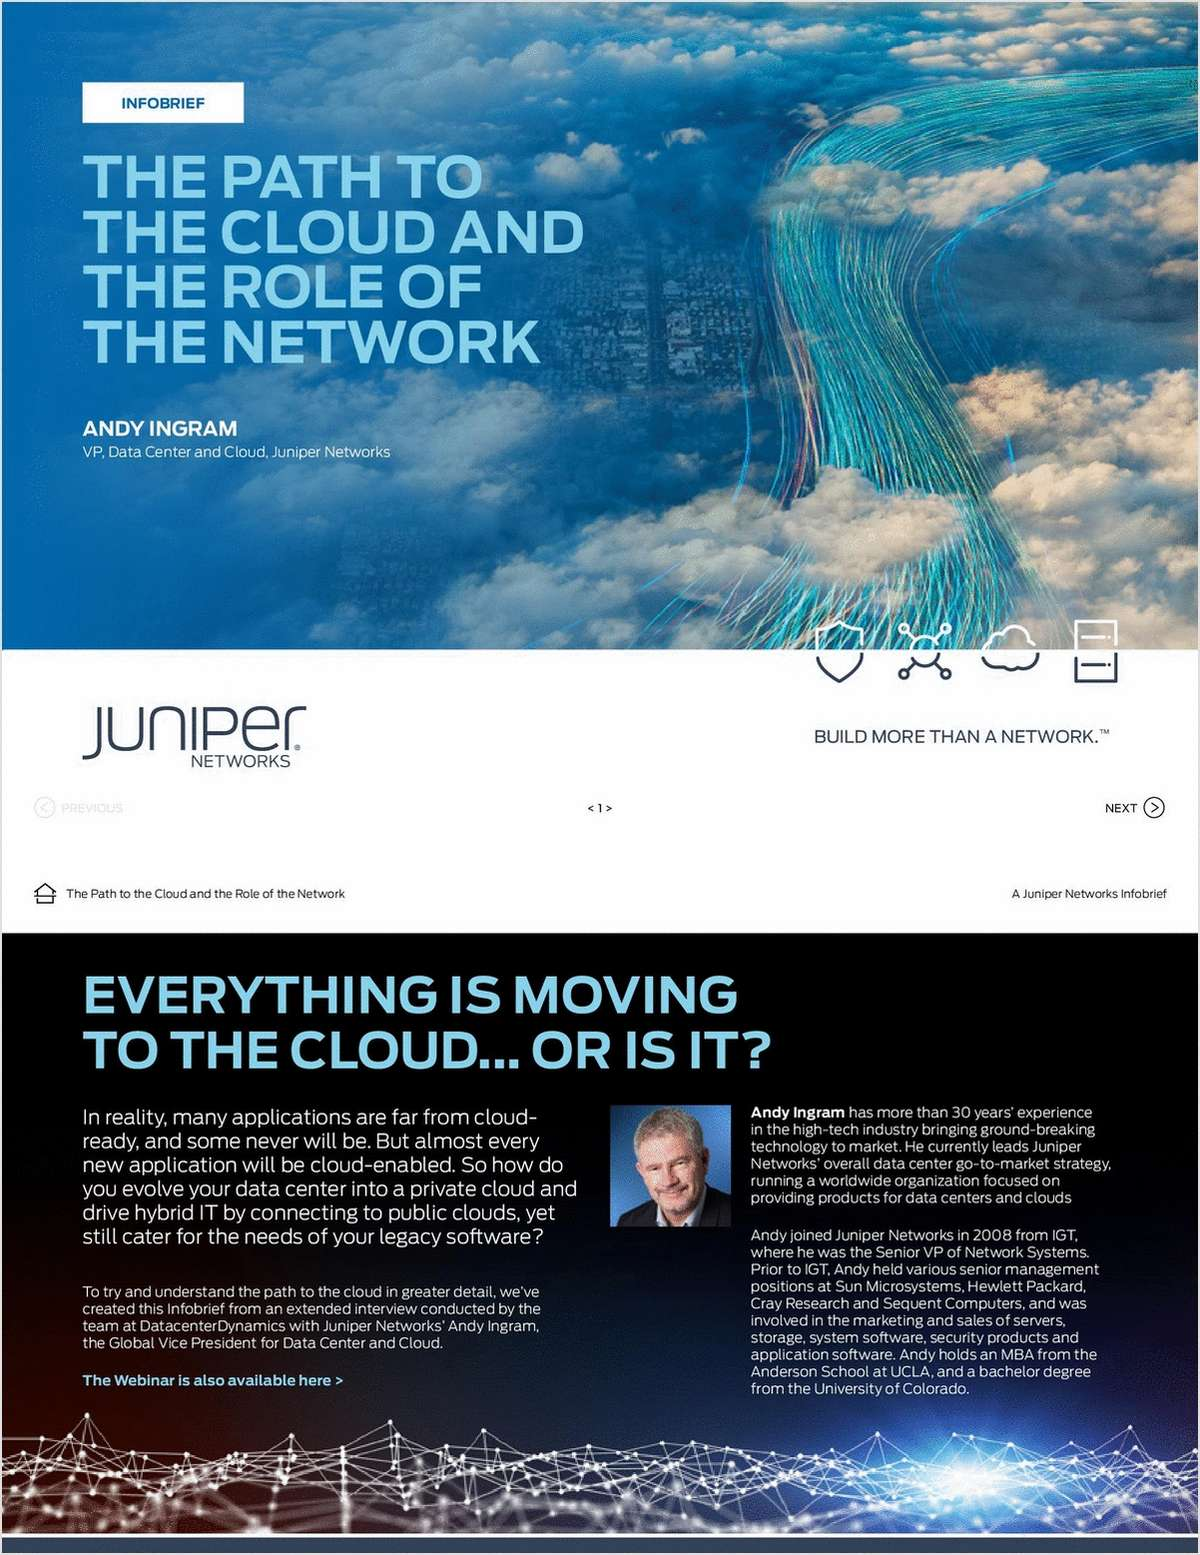 Infobrief: The Path To The Cloud And The Role Of The Network